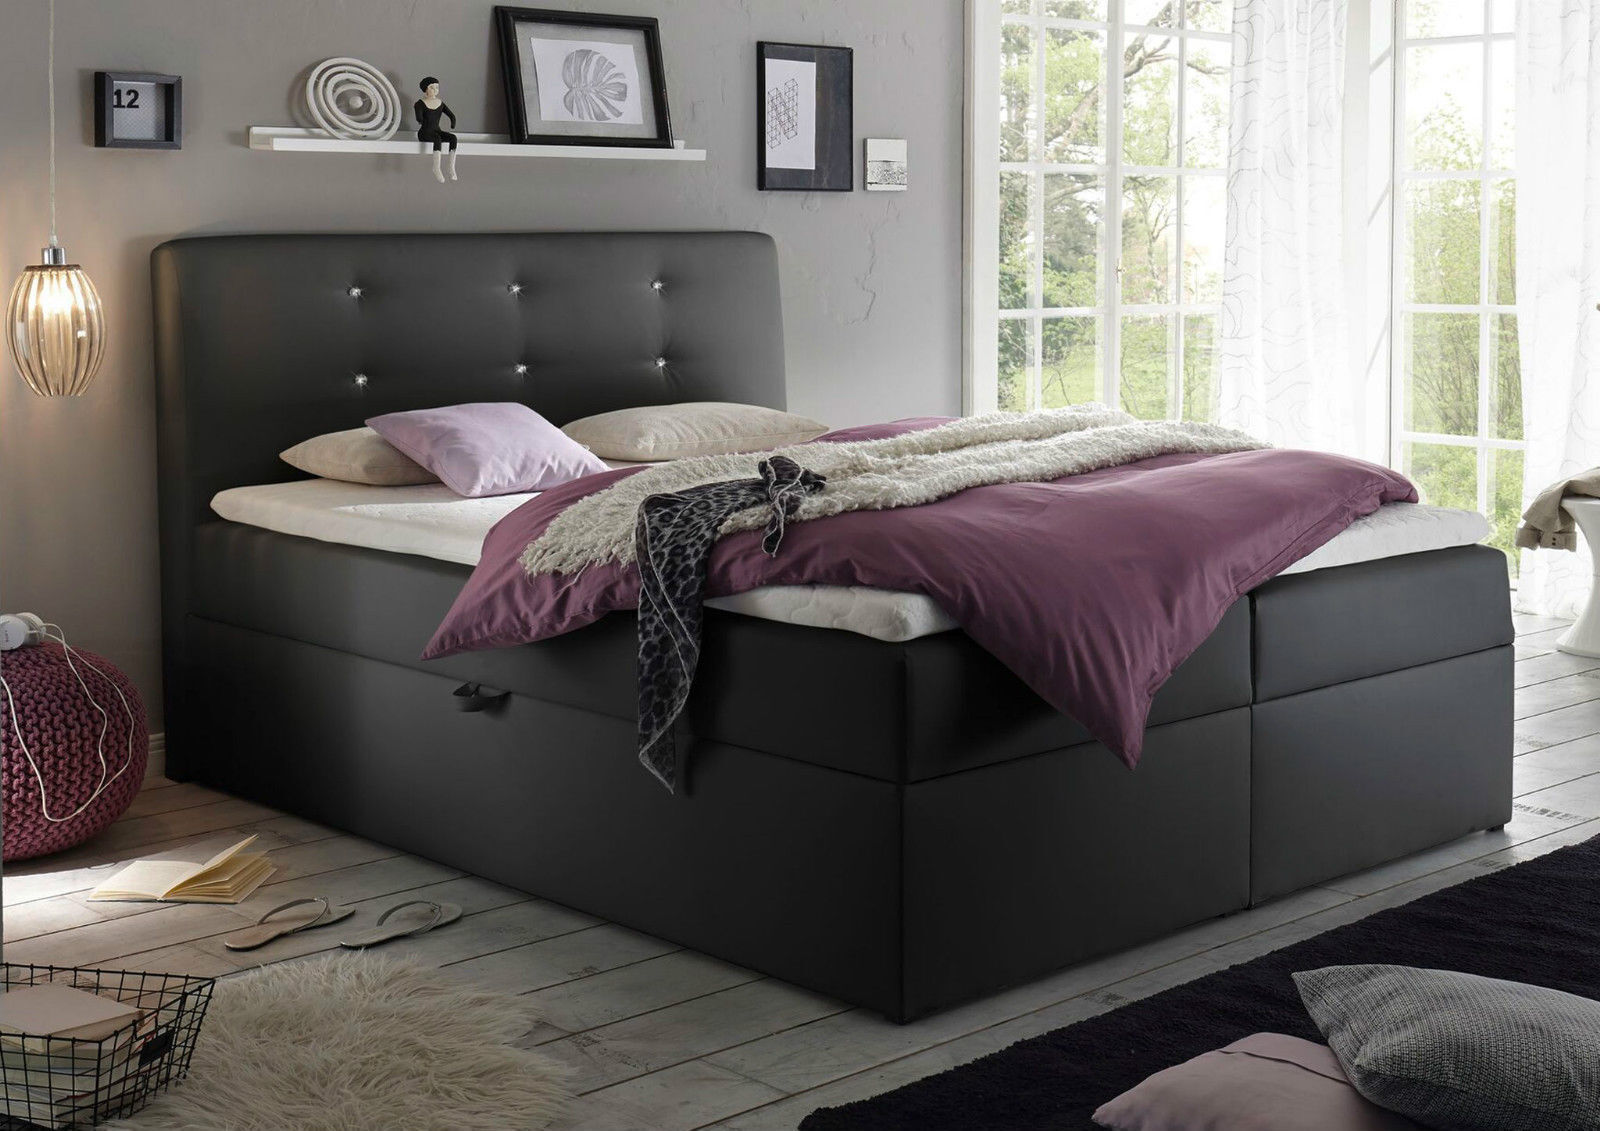 120x200 boxspringbett mit visco kasten bett komfortbett. Black Bedroom Furniture Sets. Home Design Ideas